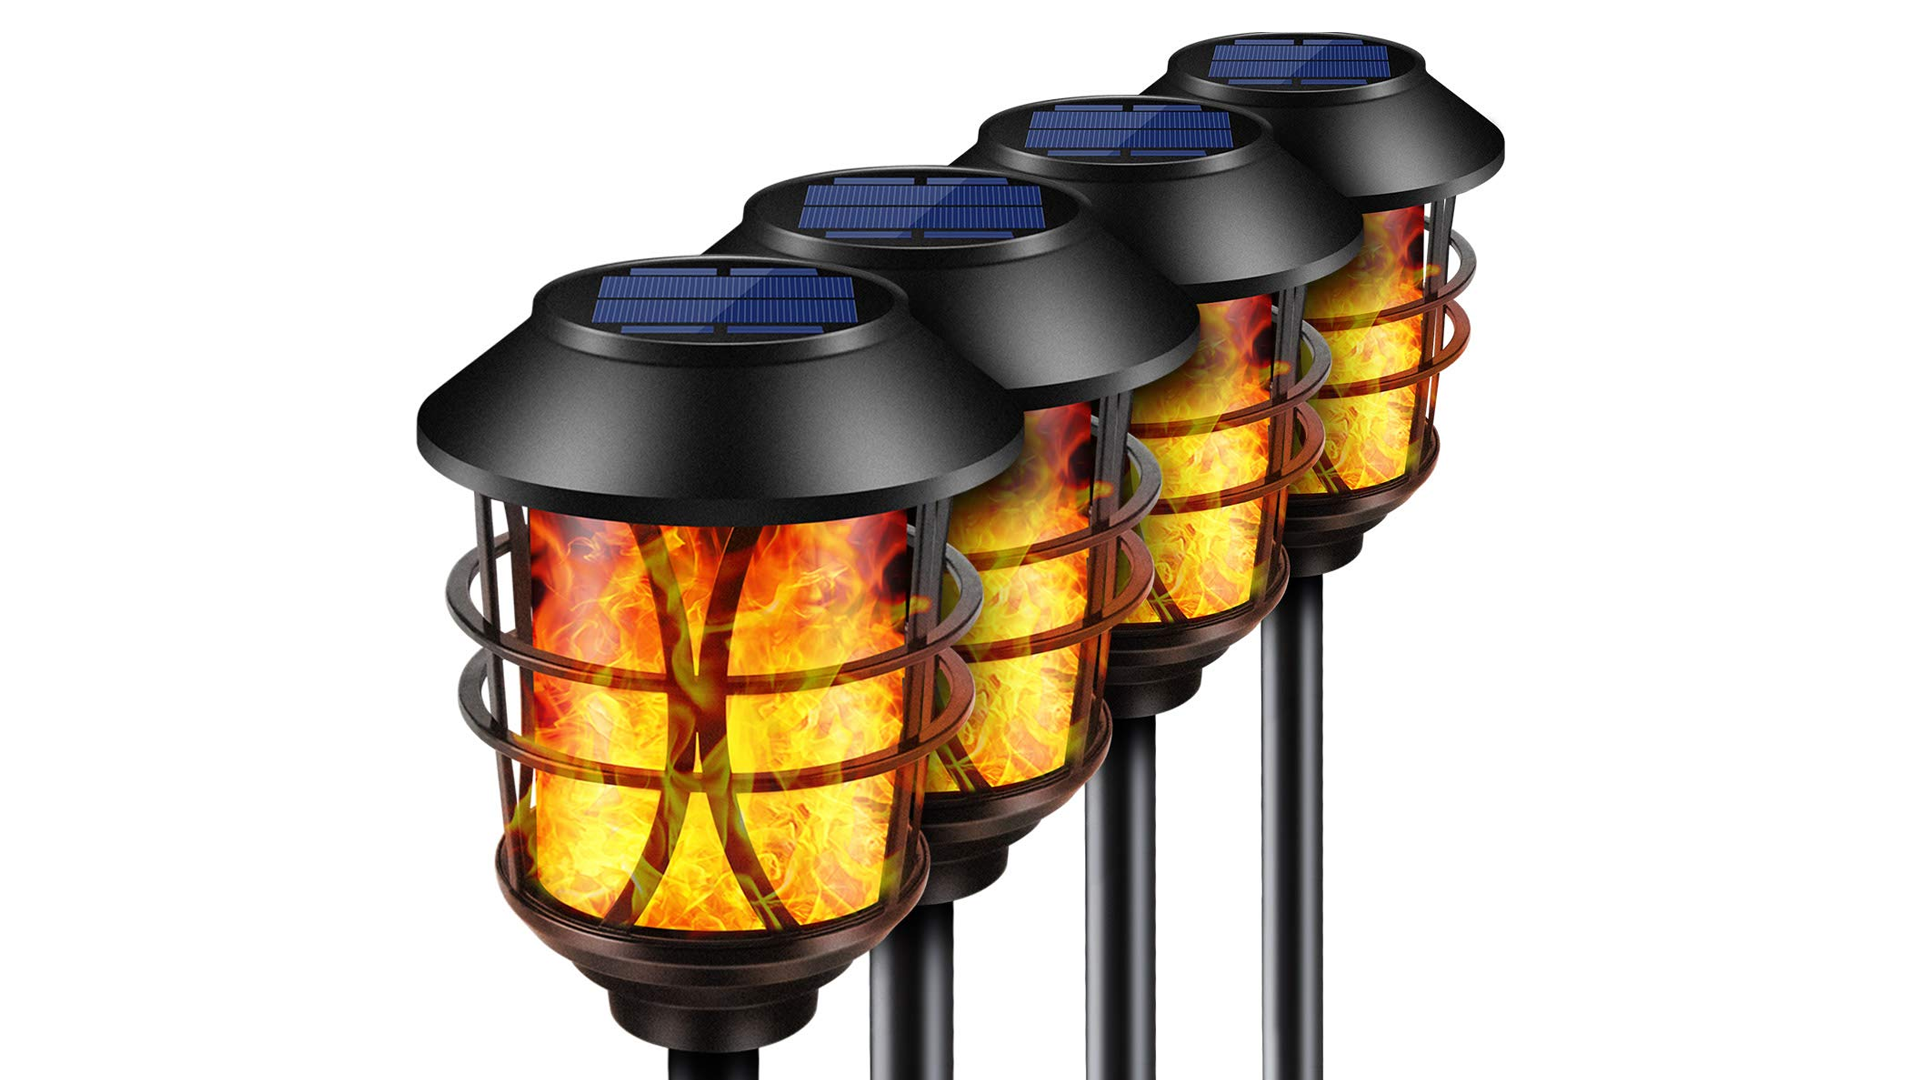 Four TomCare Solar-Powered Flickering Flame Torch Lights.